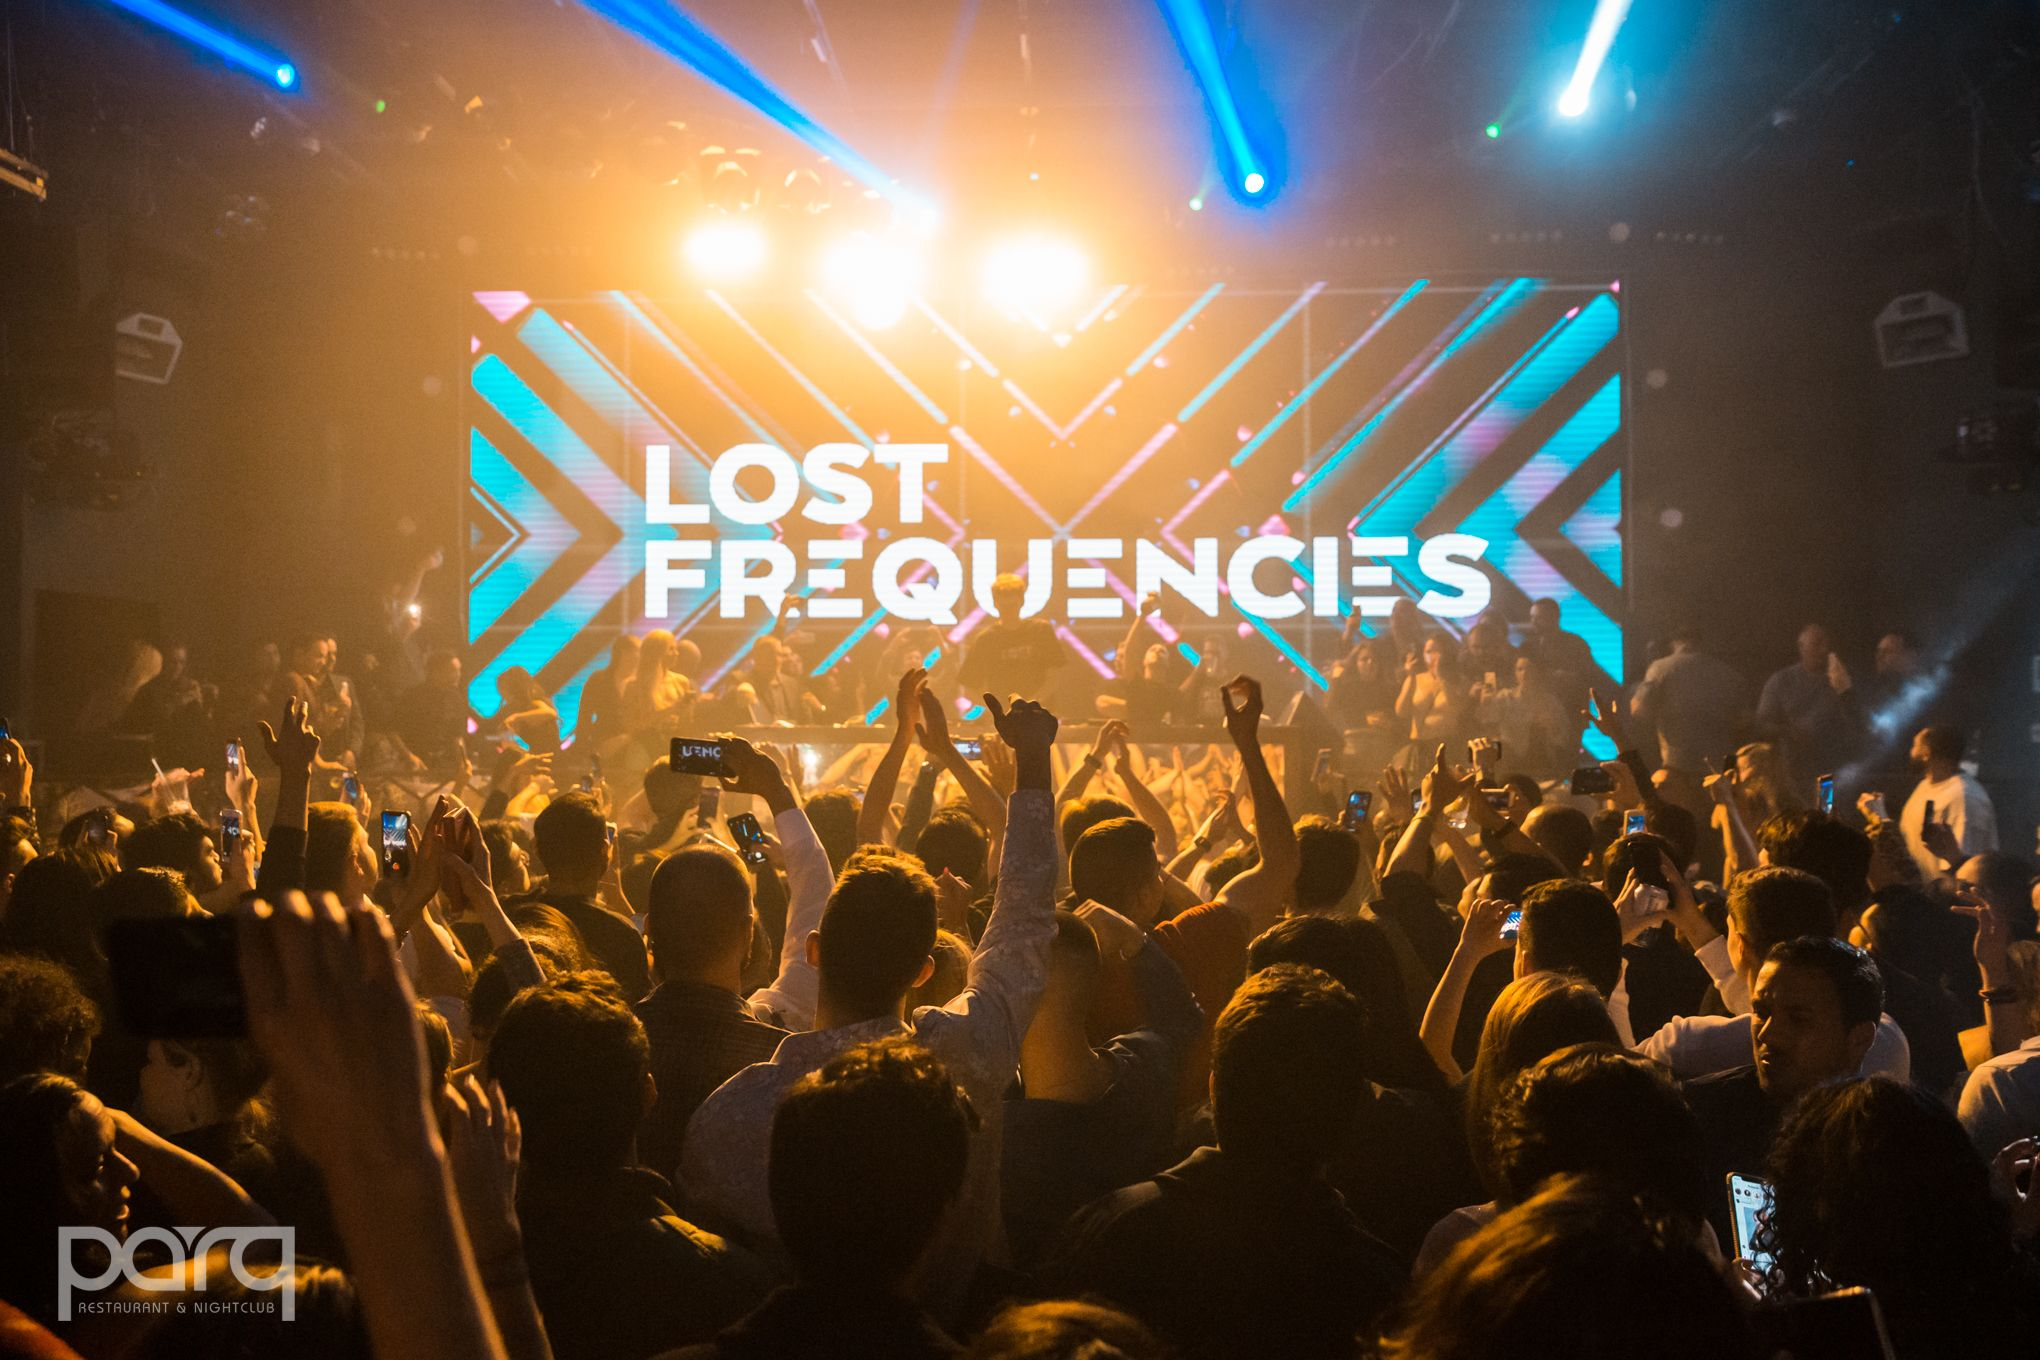 02.23.19 Parq - Lost Frequencies-1.jpg